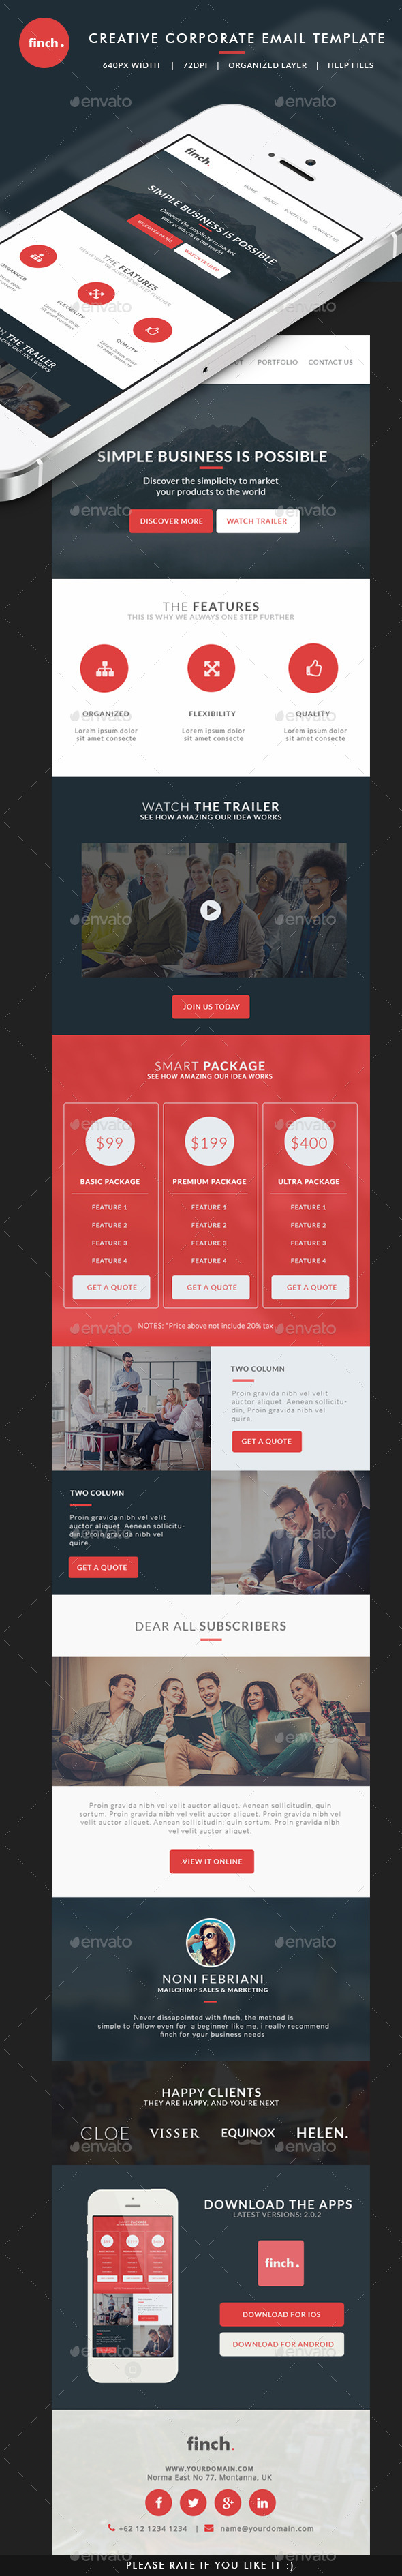 GraphicRiver Corporate Email Template finch 10450052